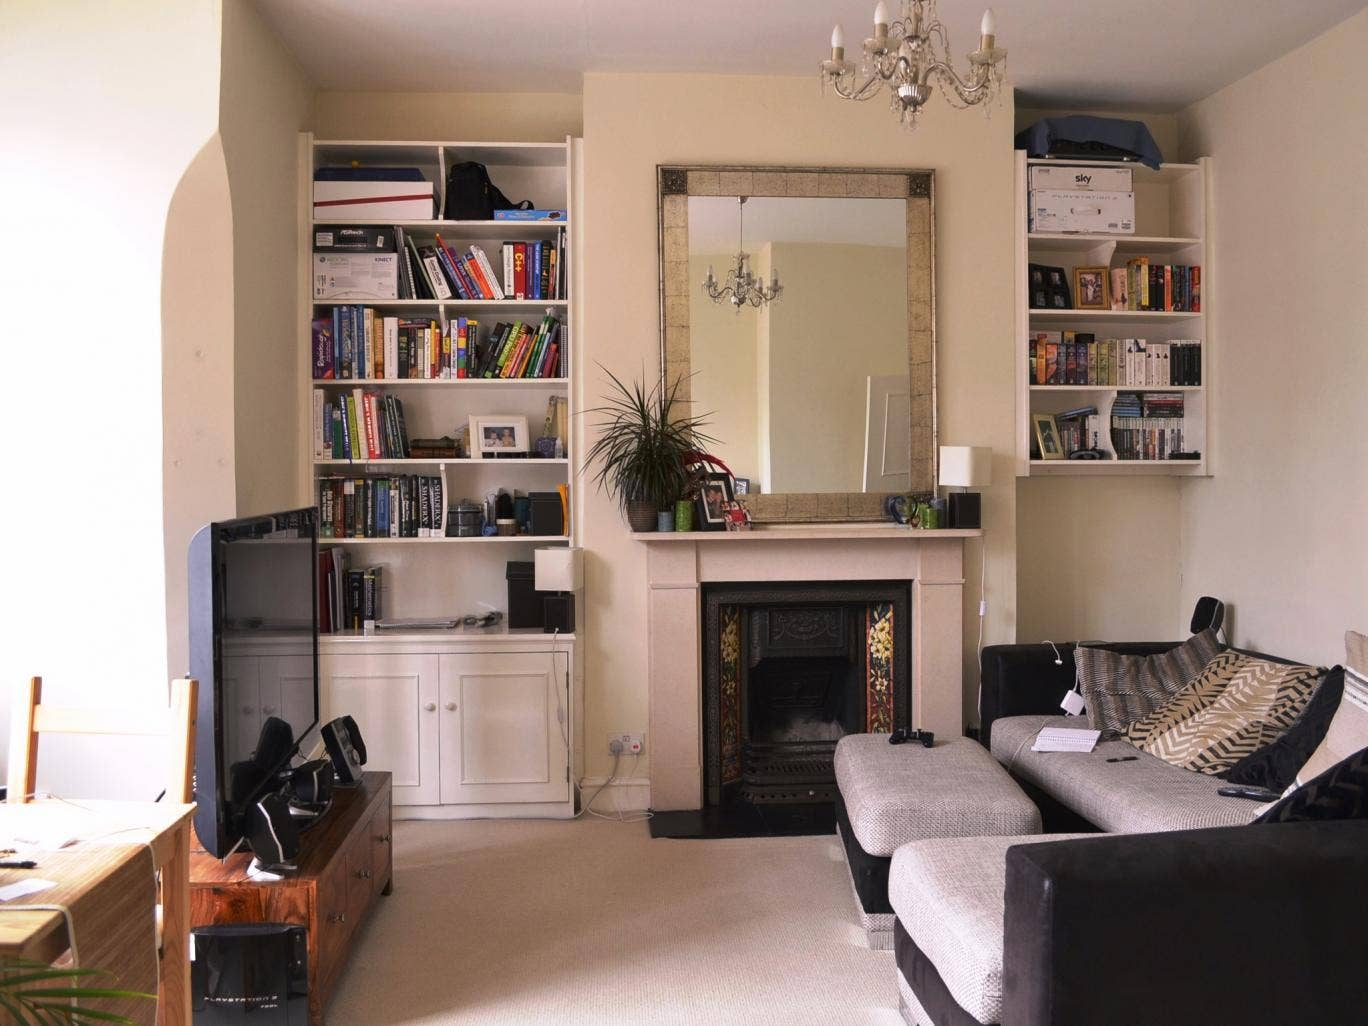 2 bedroom flat to rent in Glenloch Road, Belsize Park. On with Benham and Reeves for £475 per week.